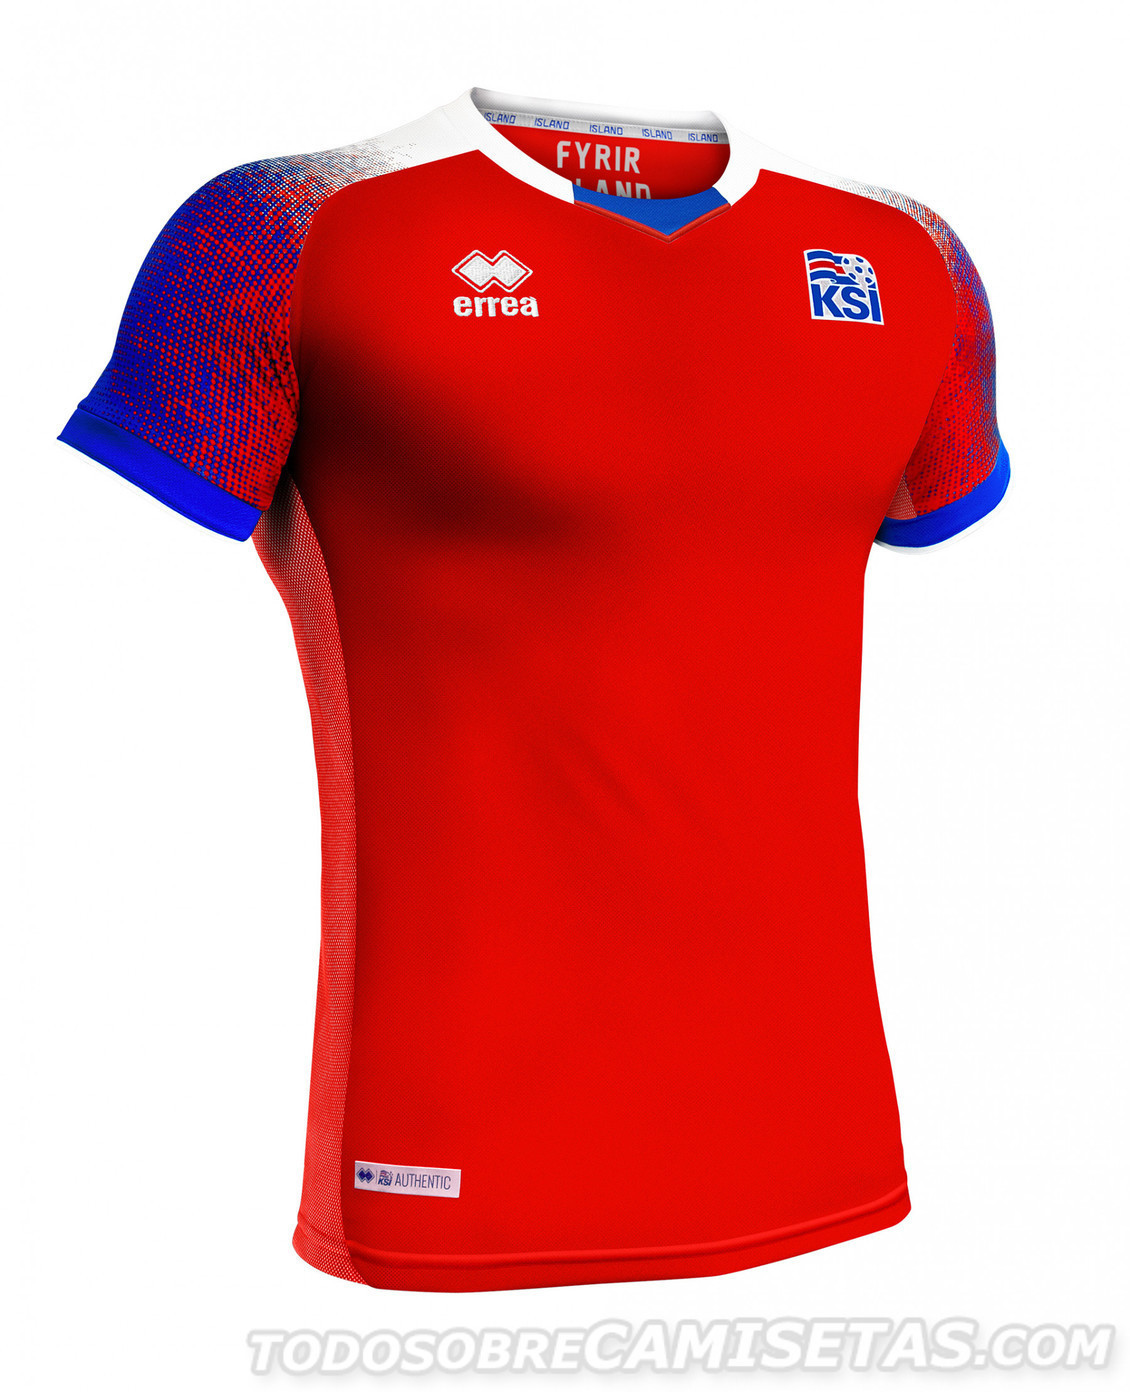 iceland-2018-world-cup-kits-errea-4.jpg